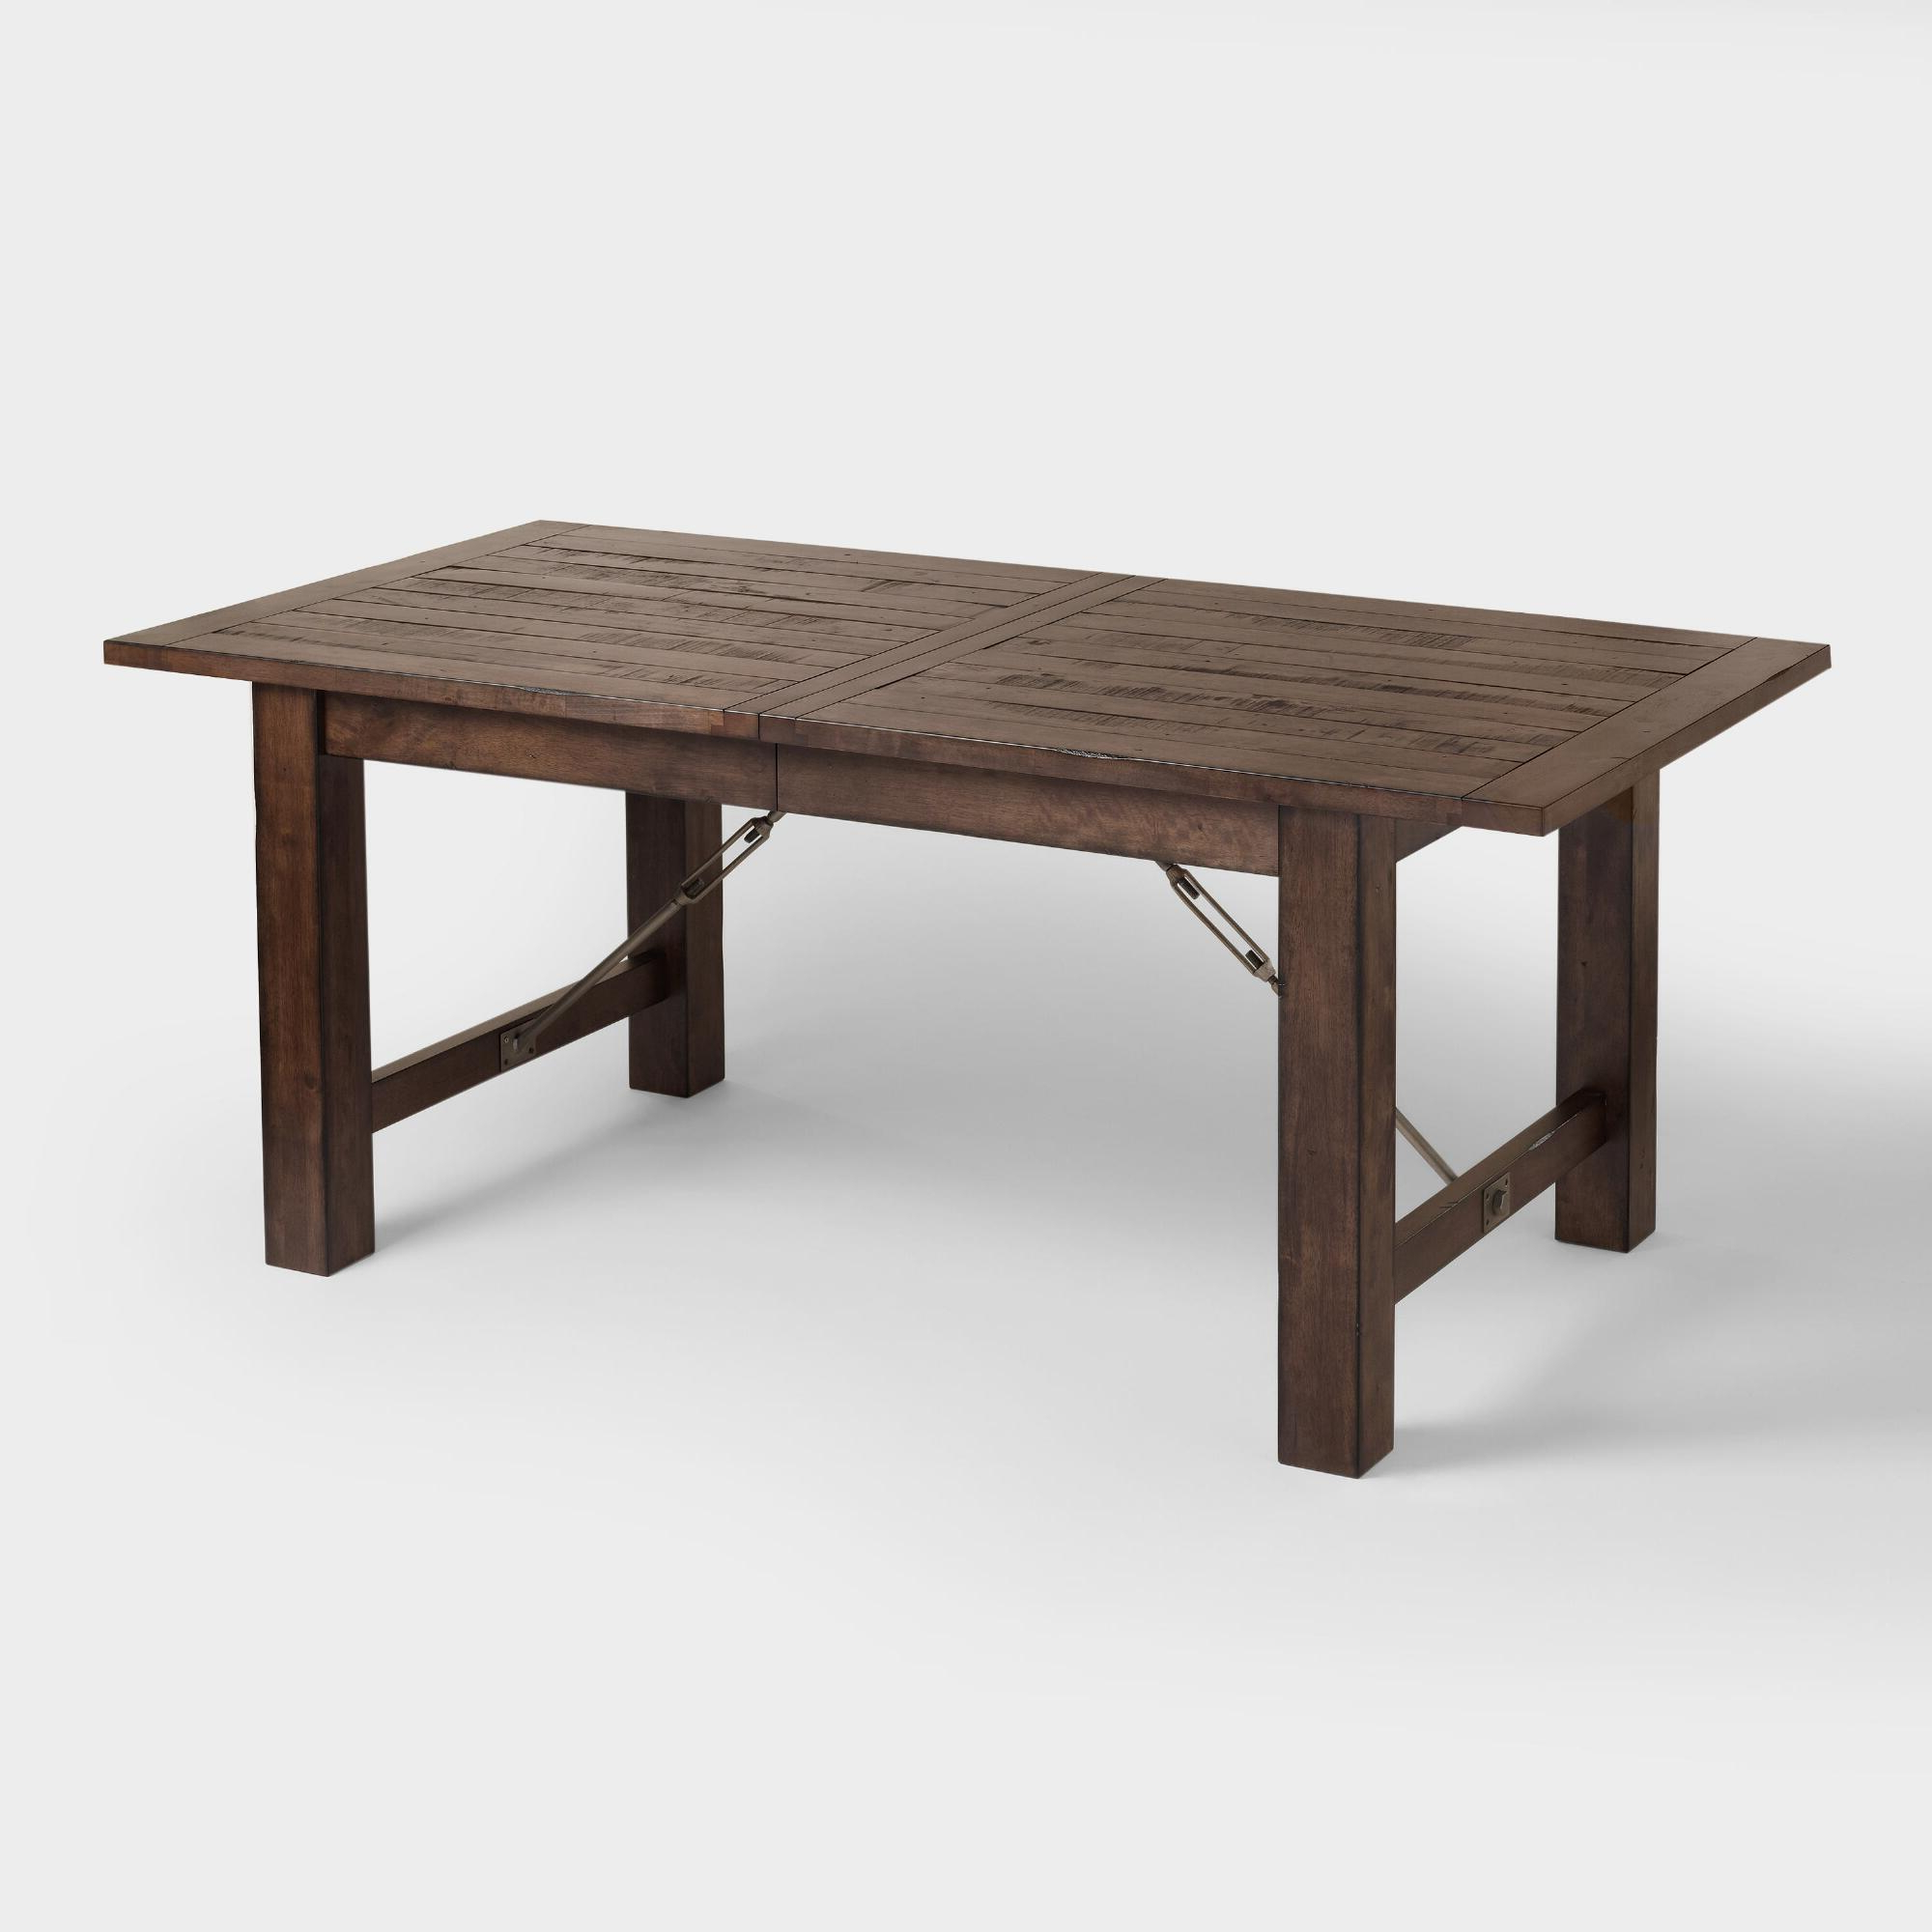 Blackened Oak Benchwright Extending Dining Tables within Fashionable Wood Garner Extension Dining Table: Brownworld Market In